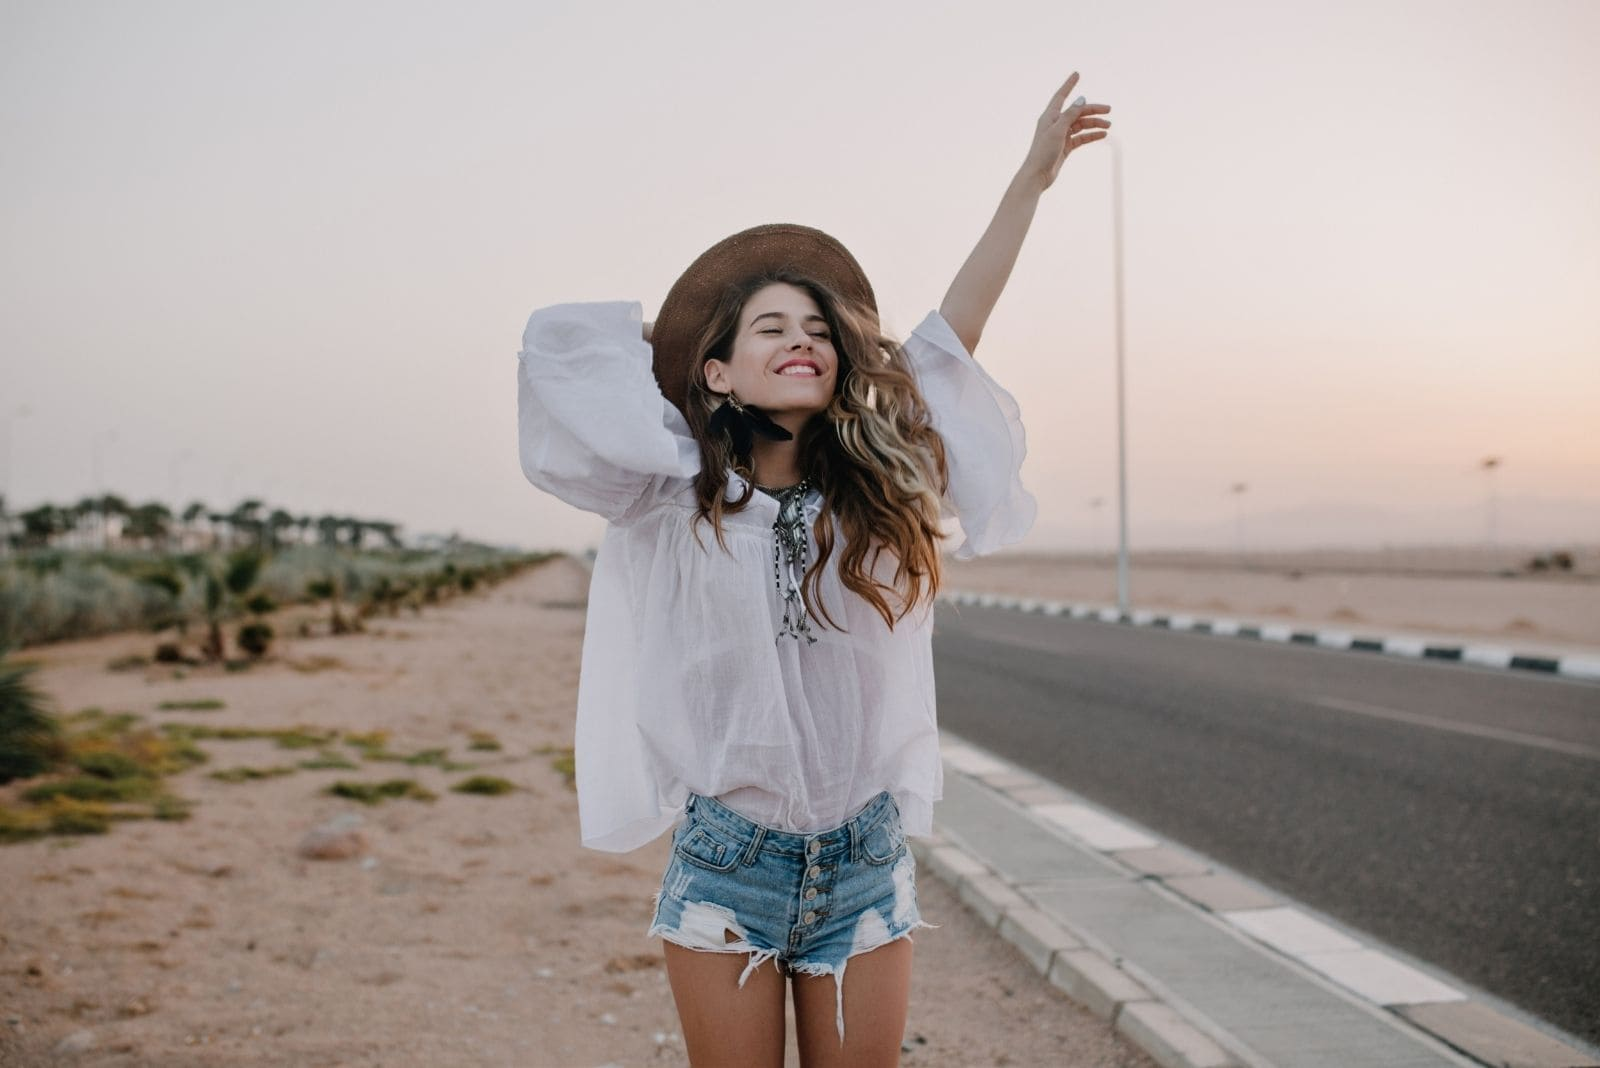 happy woman stands near the street along the highways holding her hat and raising one arm